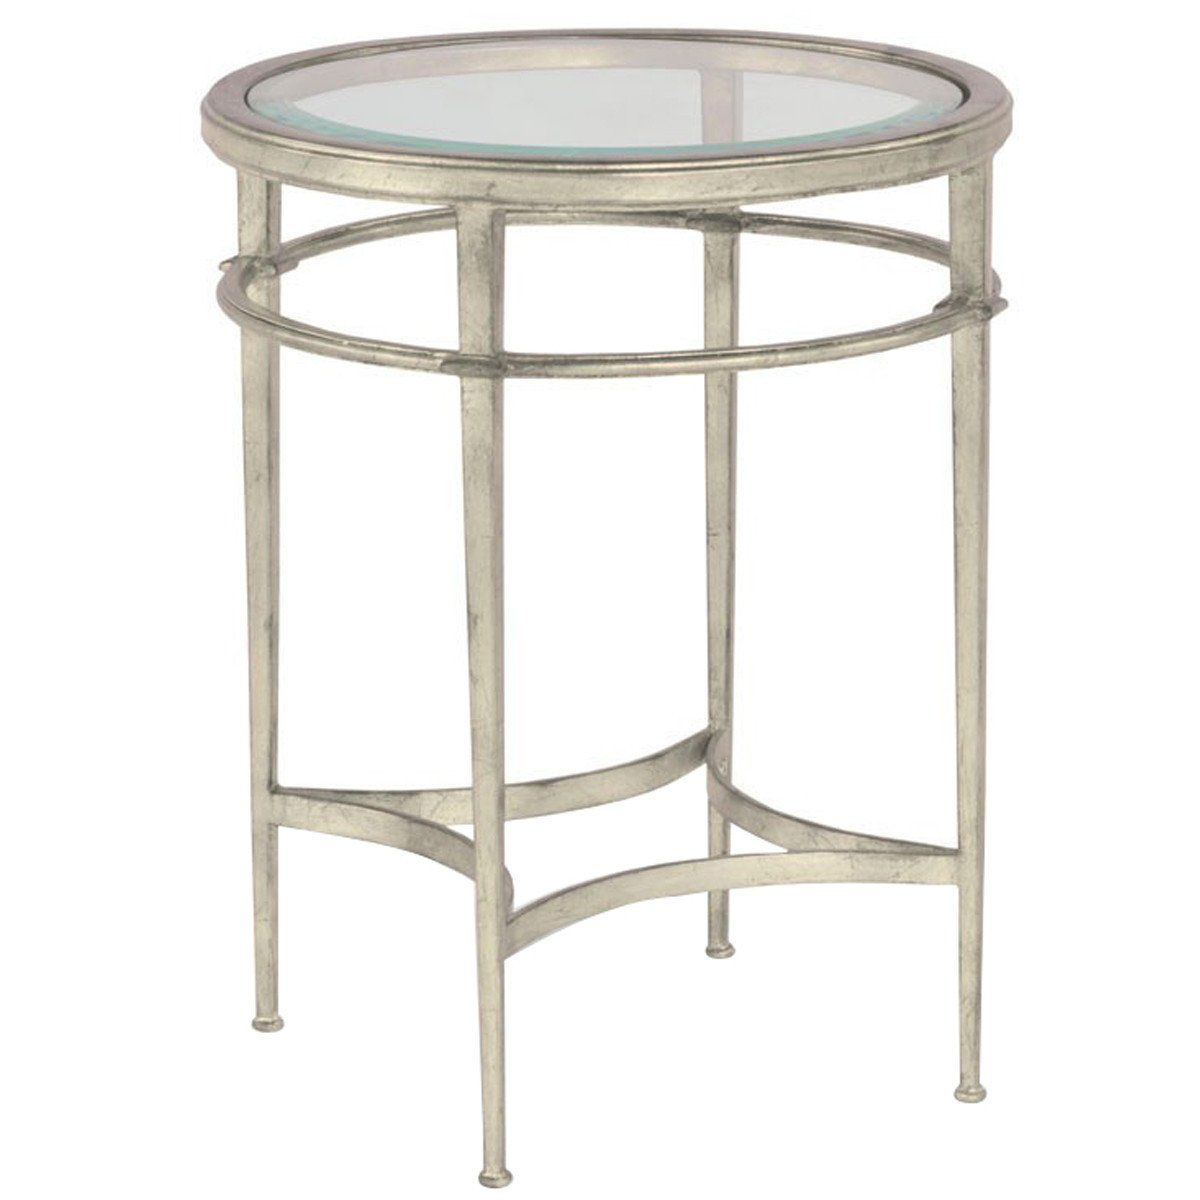 woodbridge furniture glass top madeline round side table products front end tables ashley shipping leather sofa styles liberty cabin fever dining laura room chairs accent winnipeg